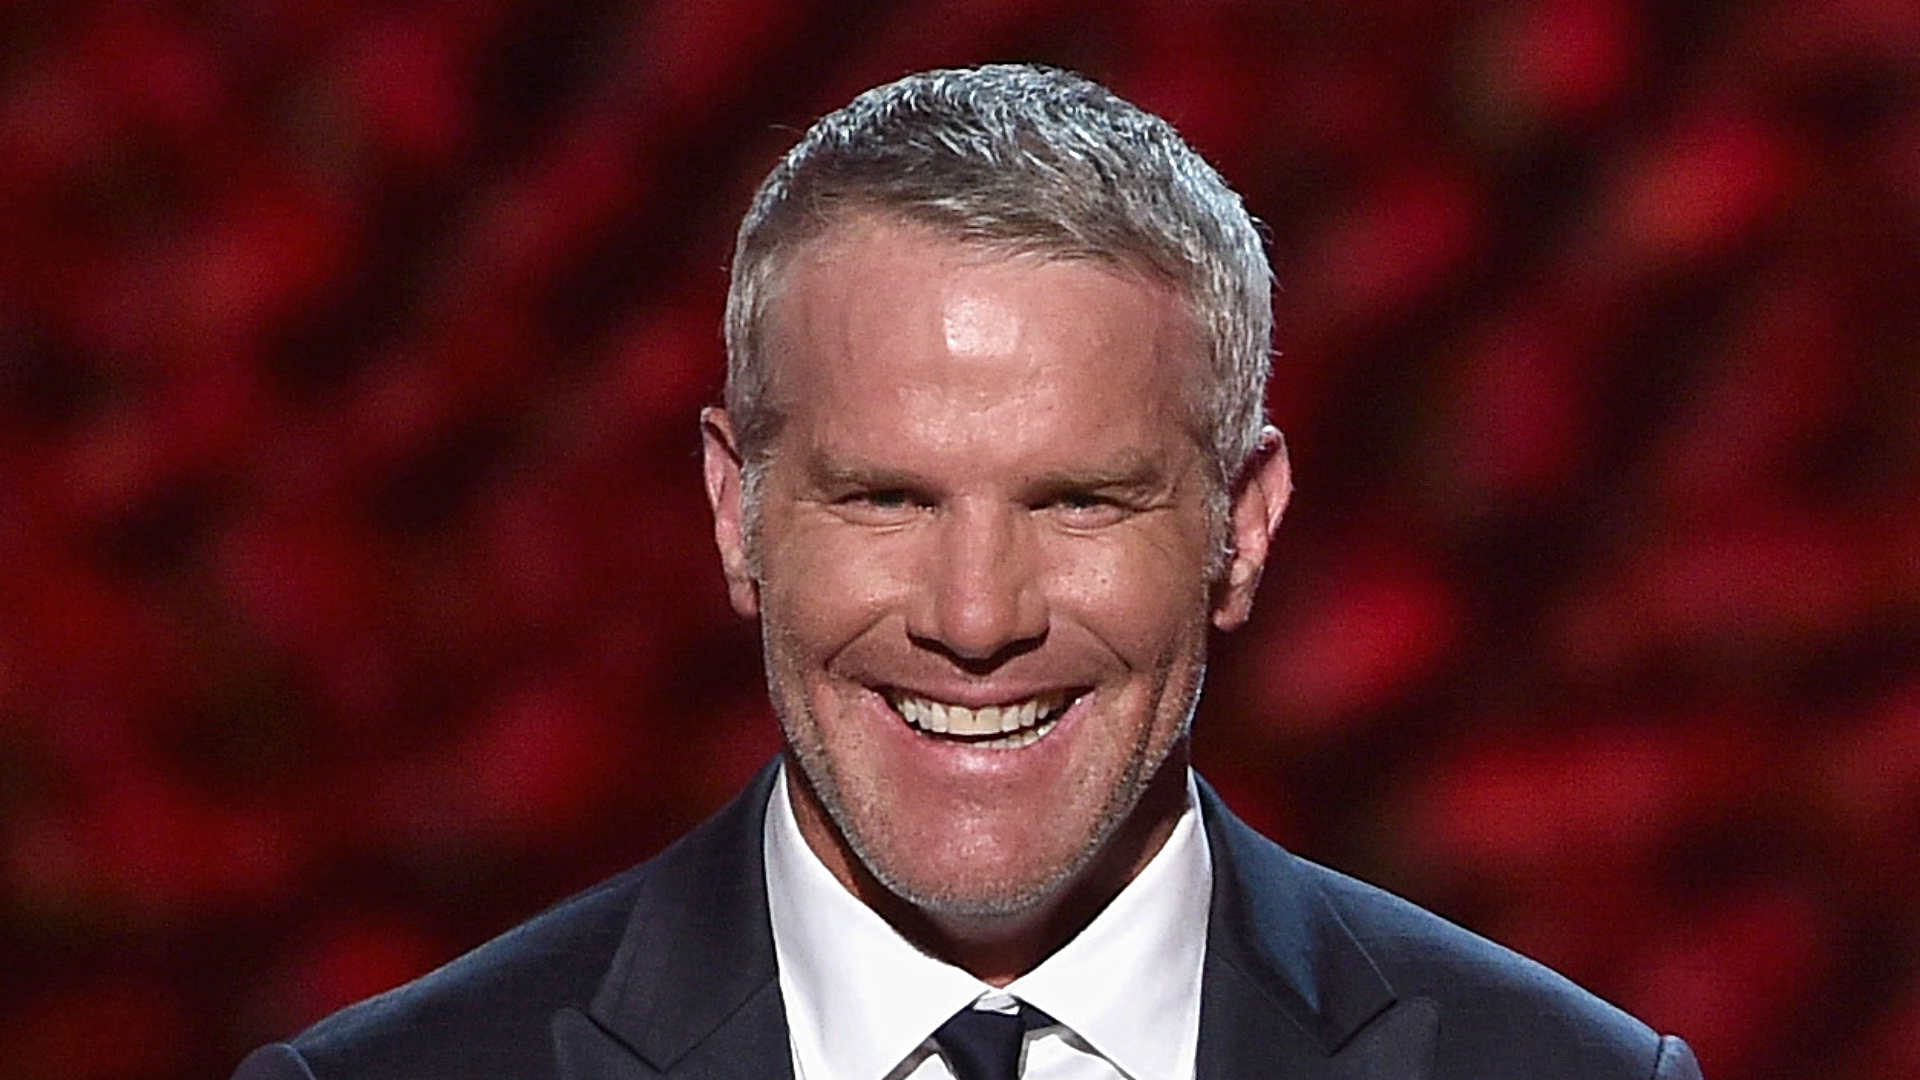 Brett Favre failed his 'Monday Night Football' audition